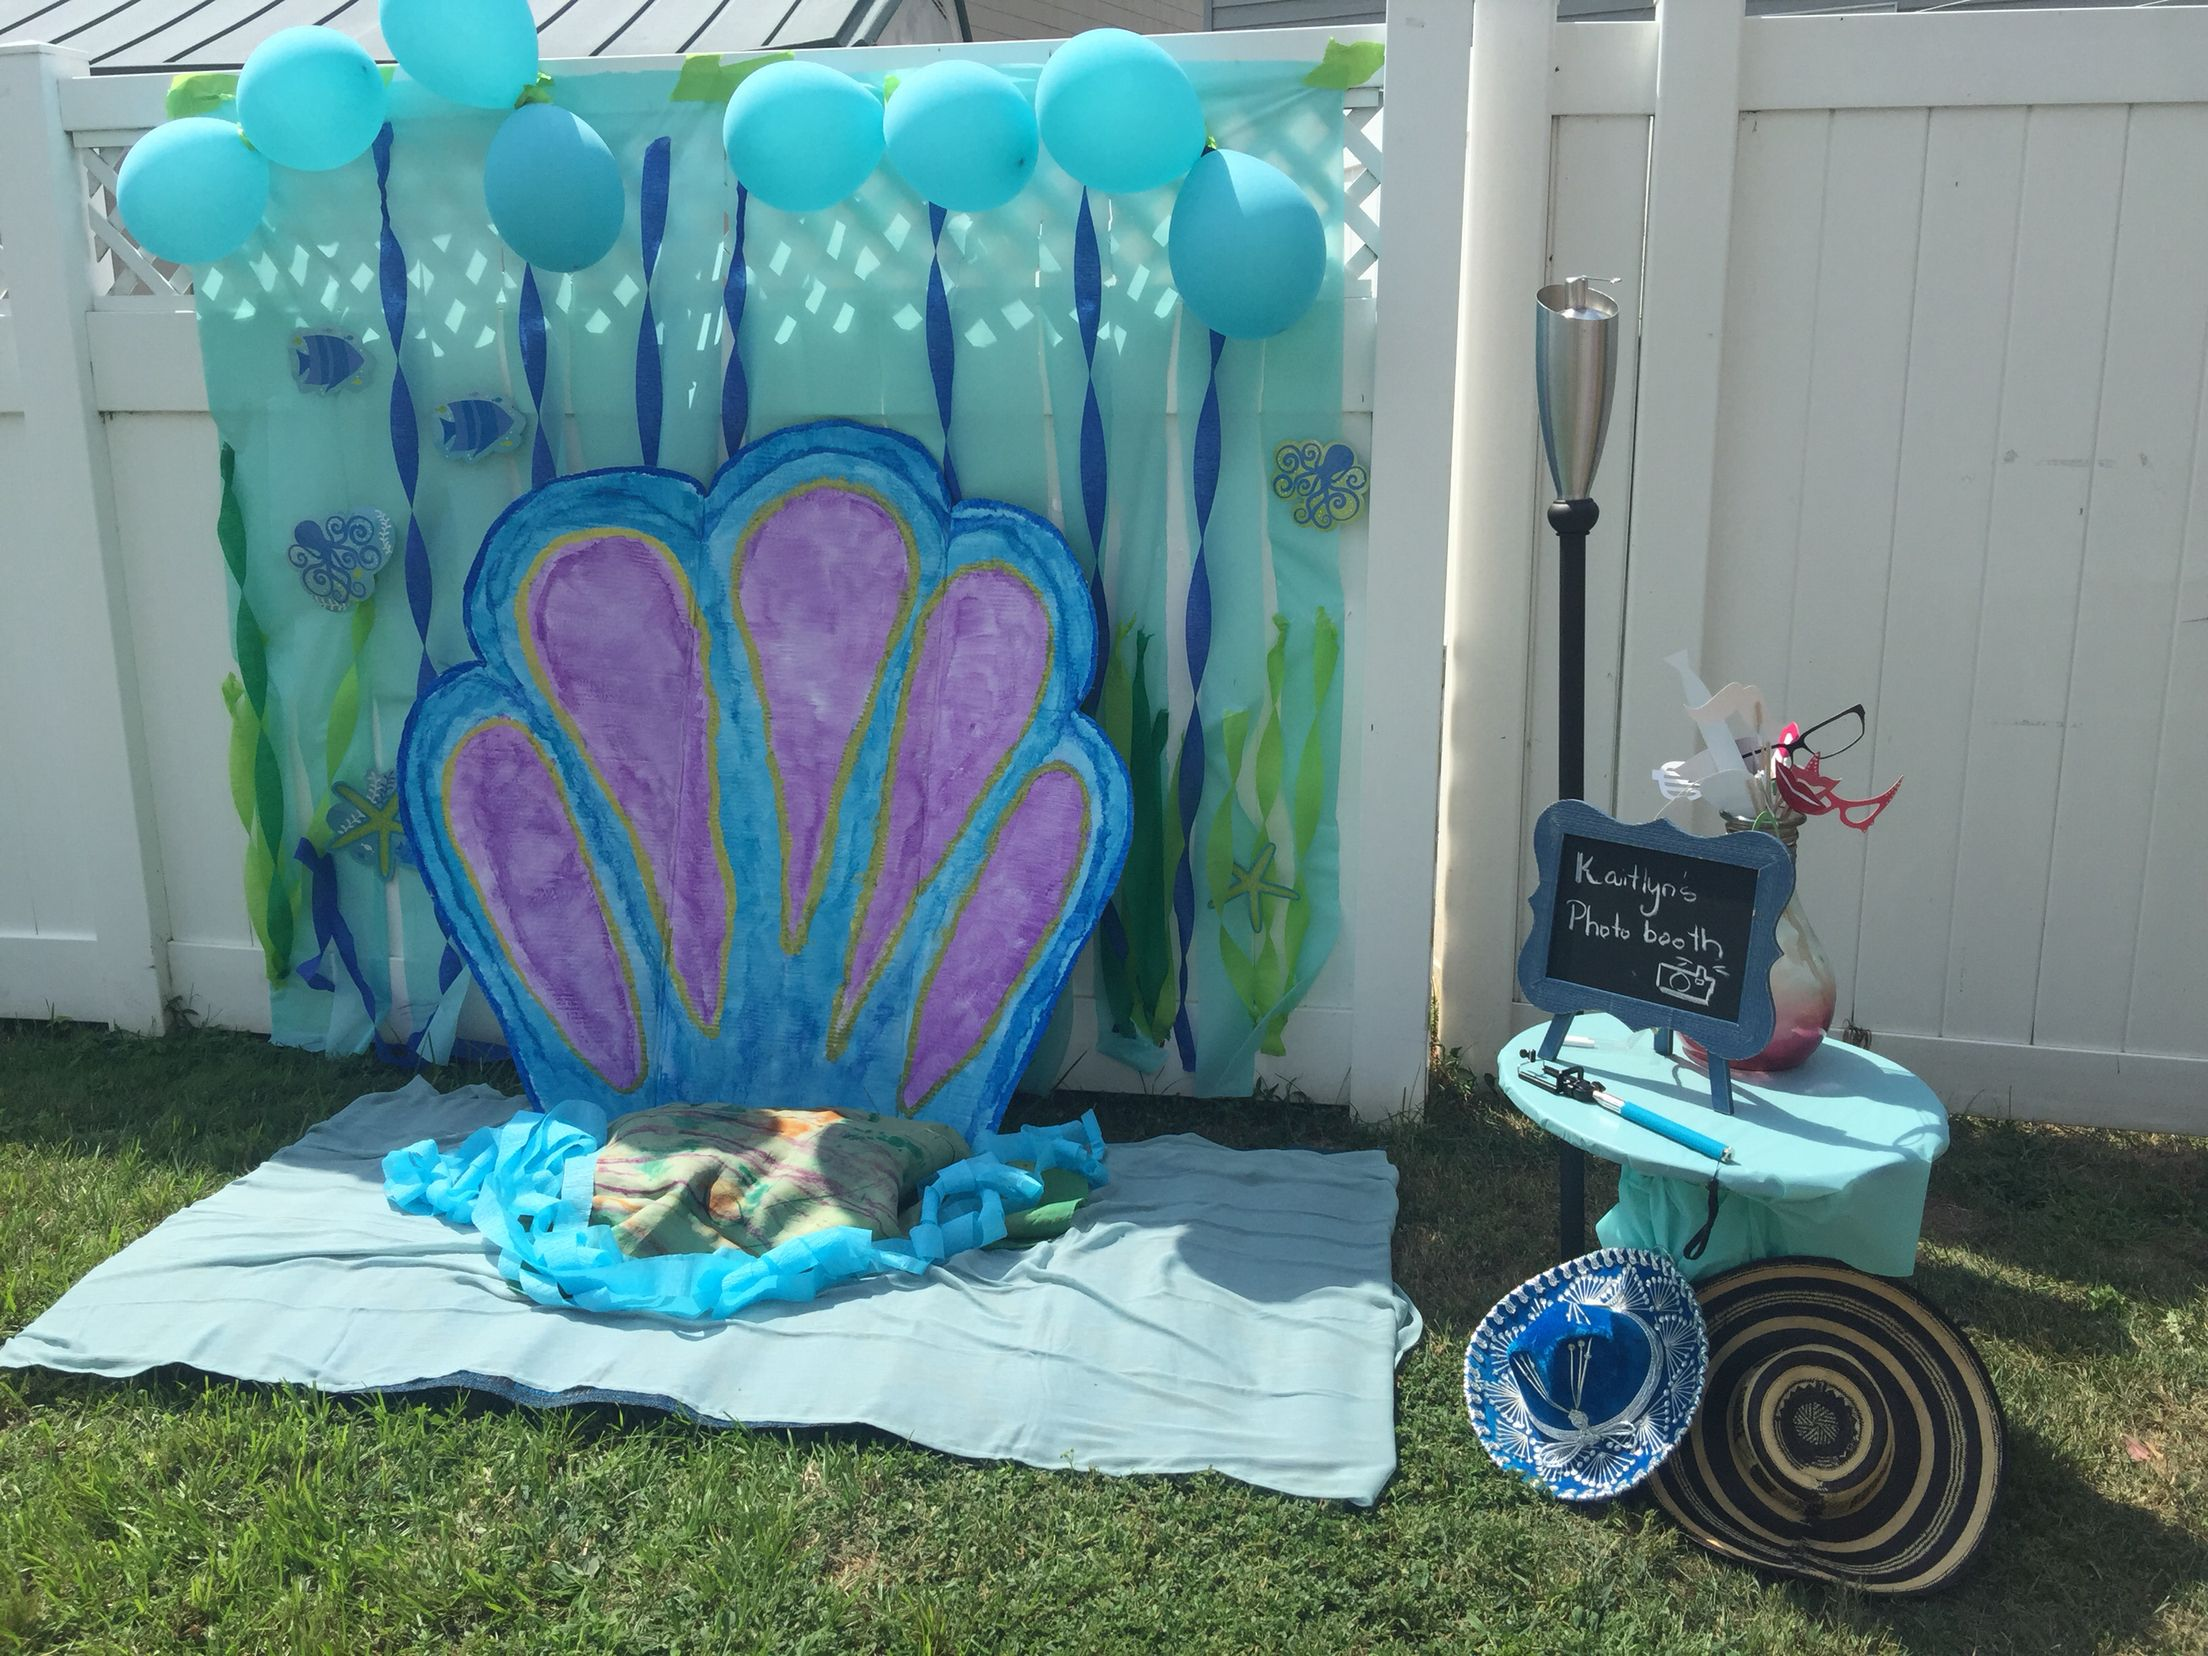 Ocean Theme Decorating Ideas Photo Booth Background Under The Sea Theme Cute Idea For